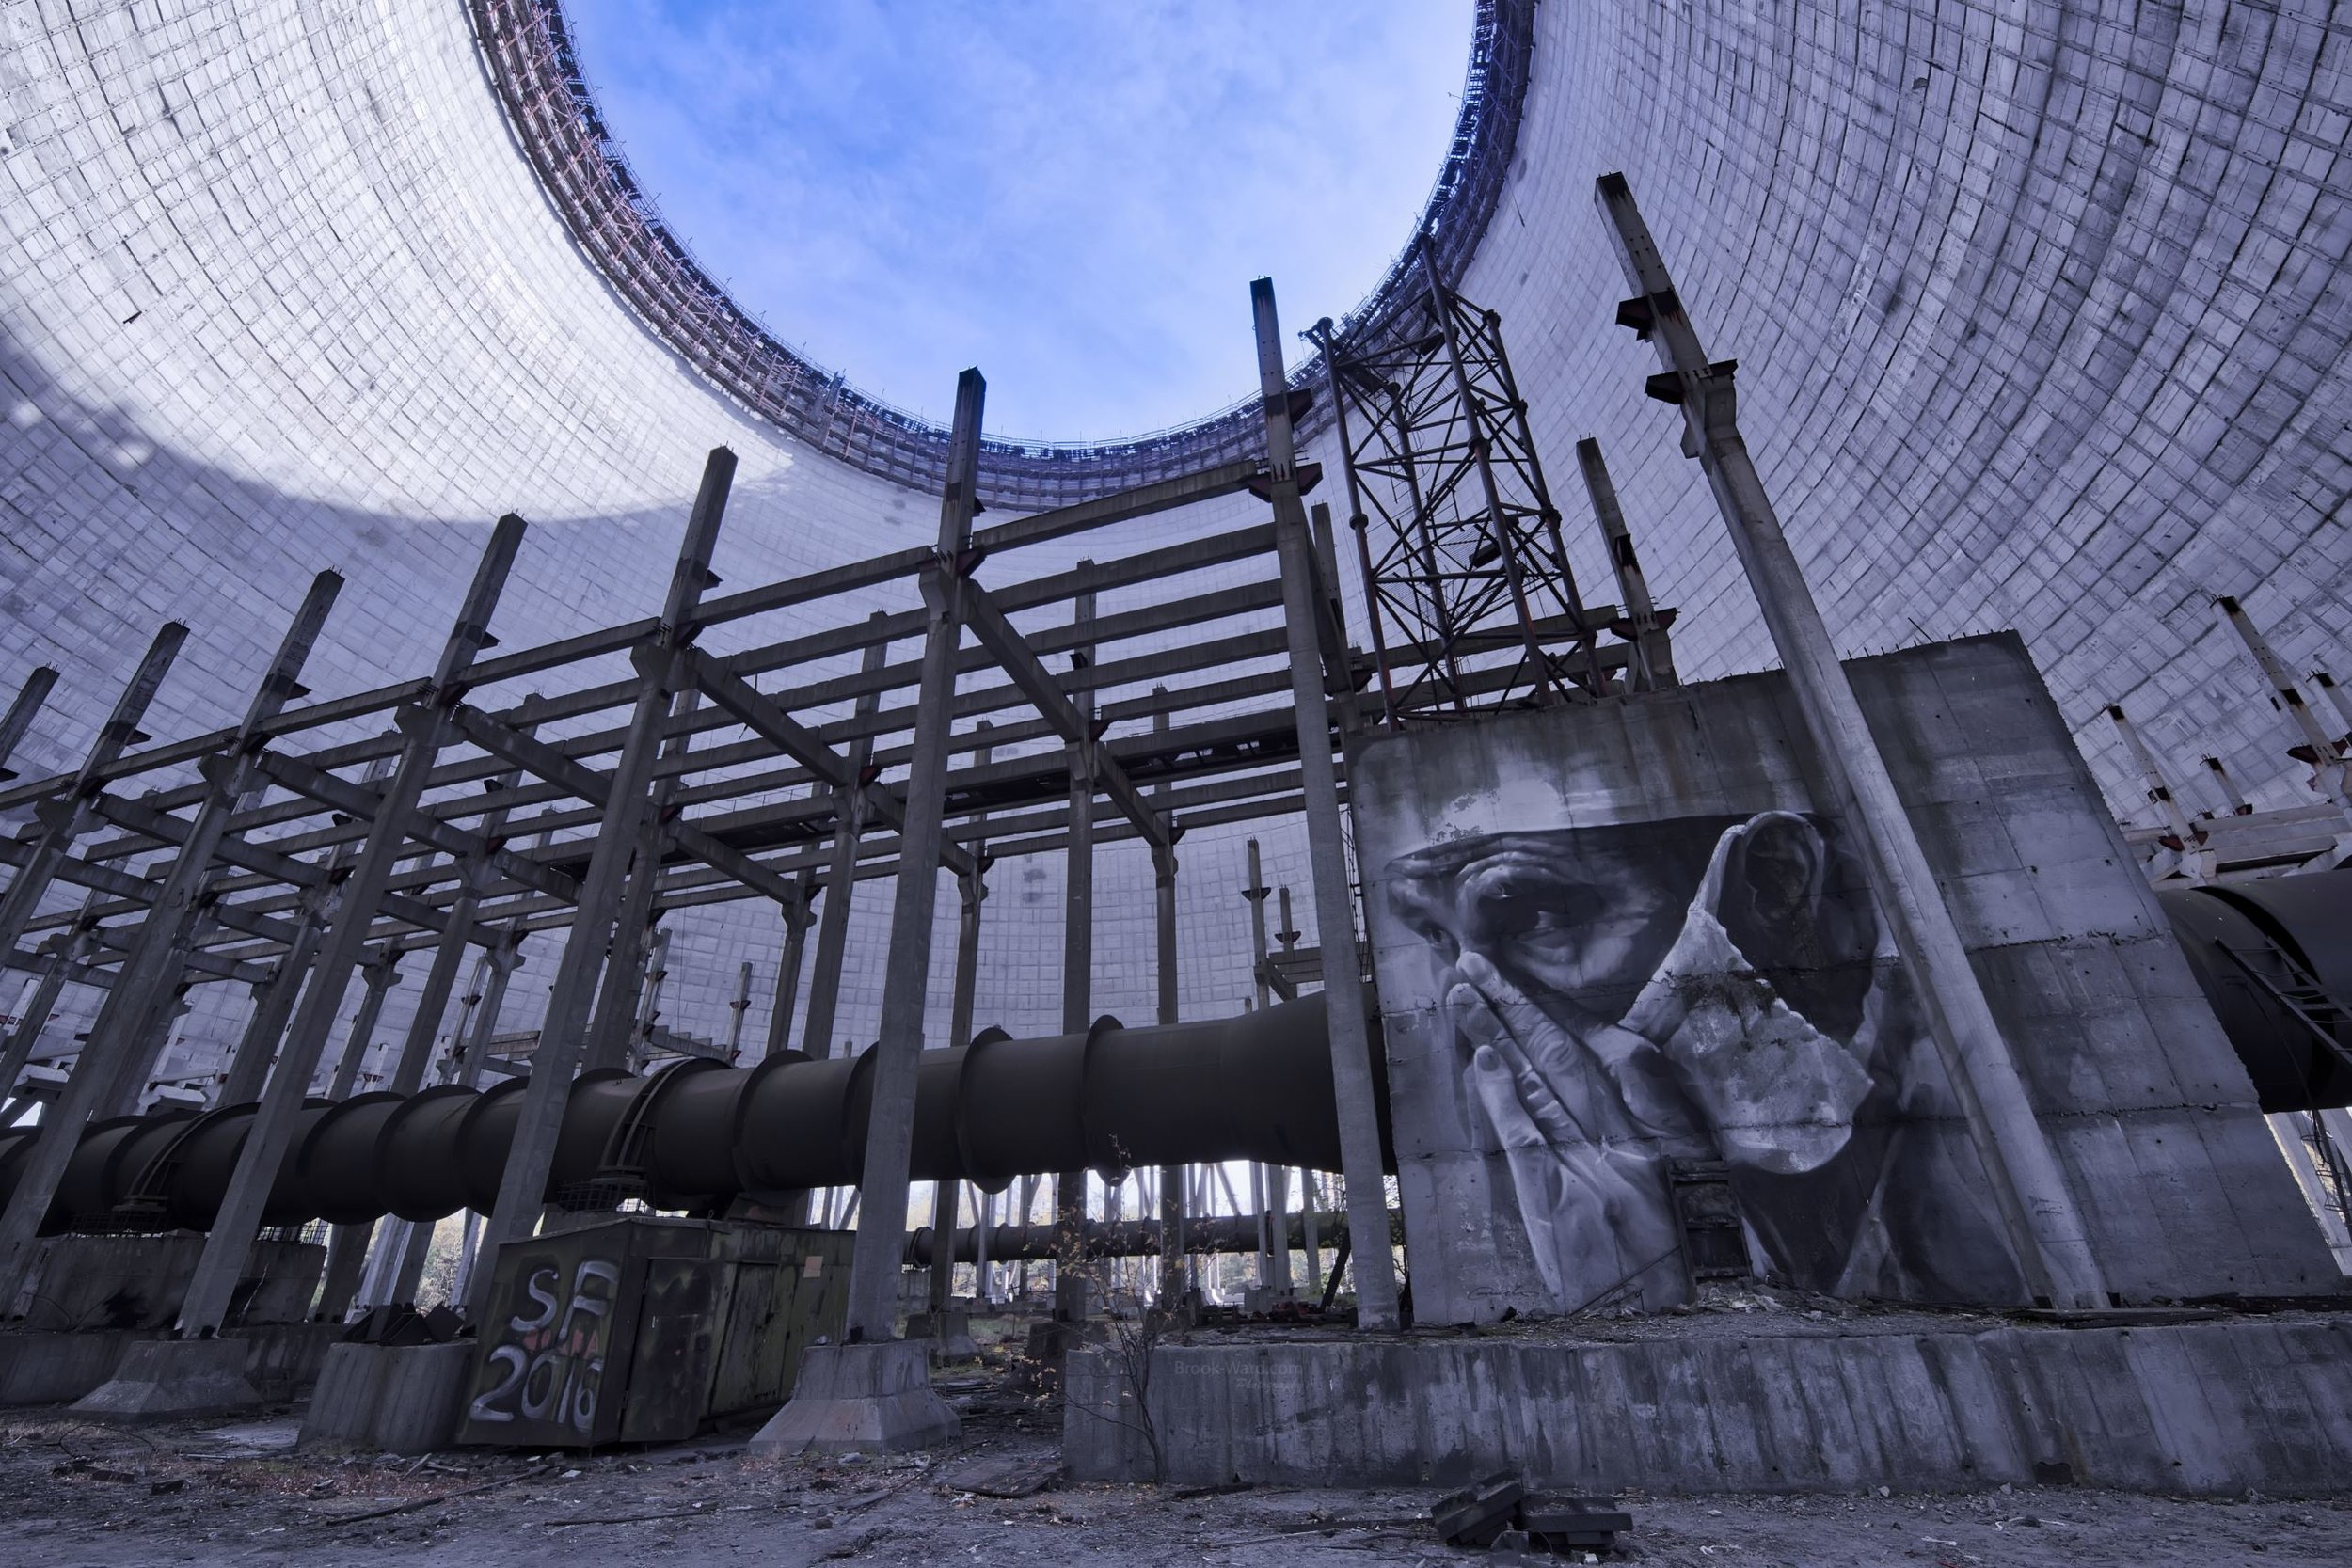 Chernobyl Cooling Tower